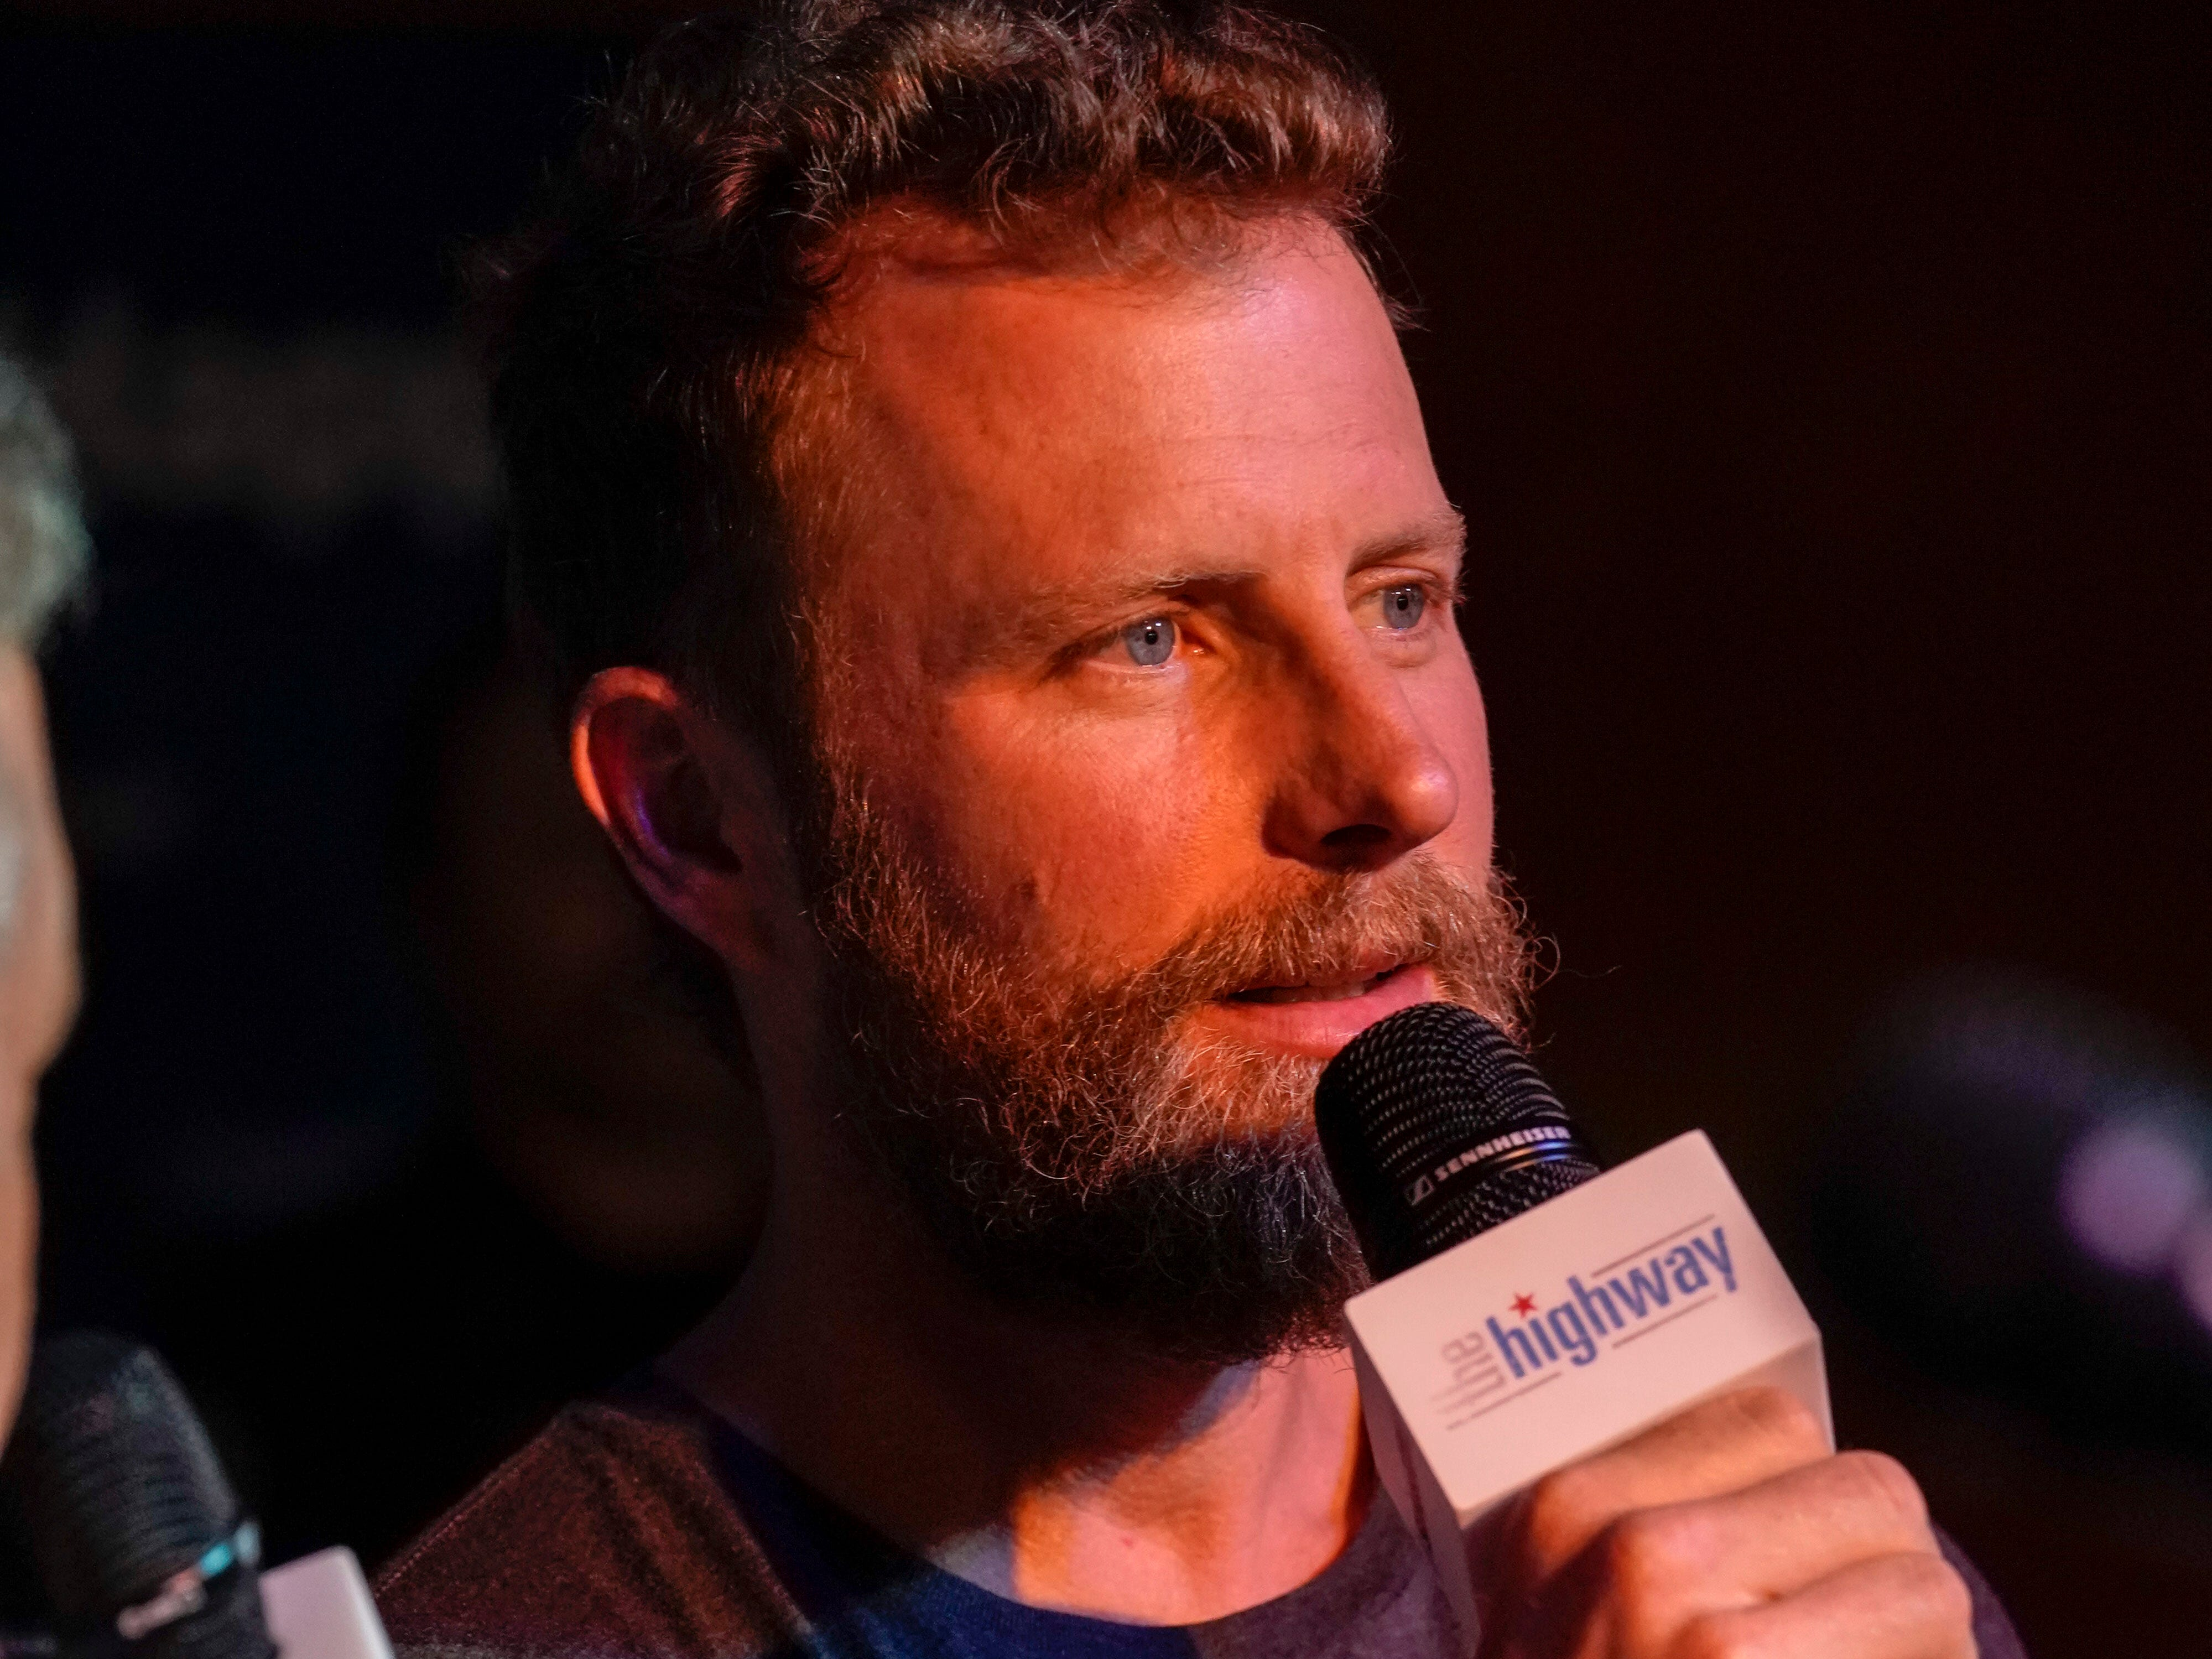 Dierks Bentley performs  on June 7, 2018 in Nashville.